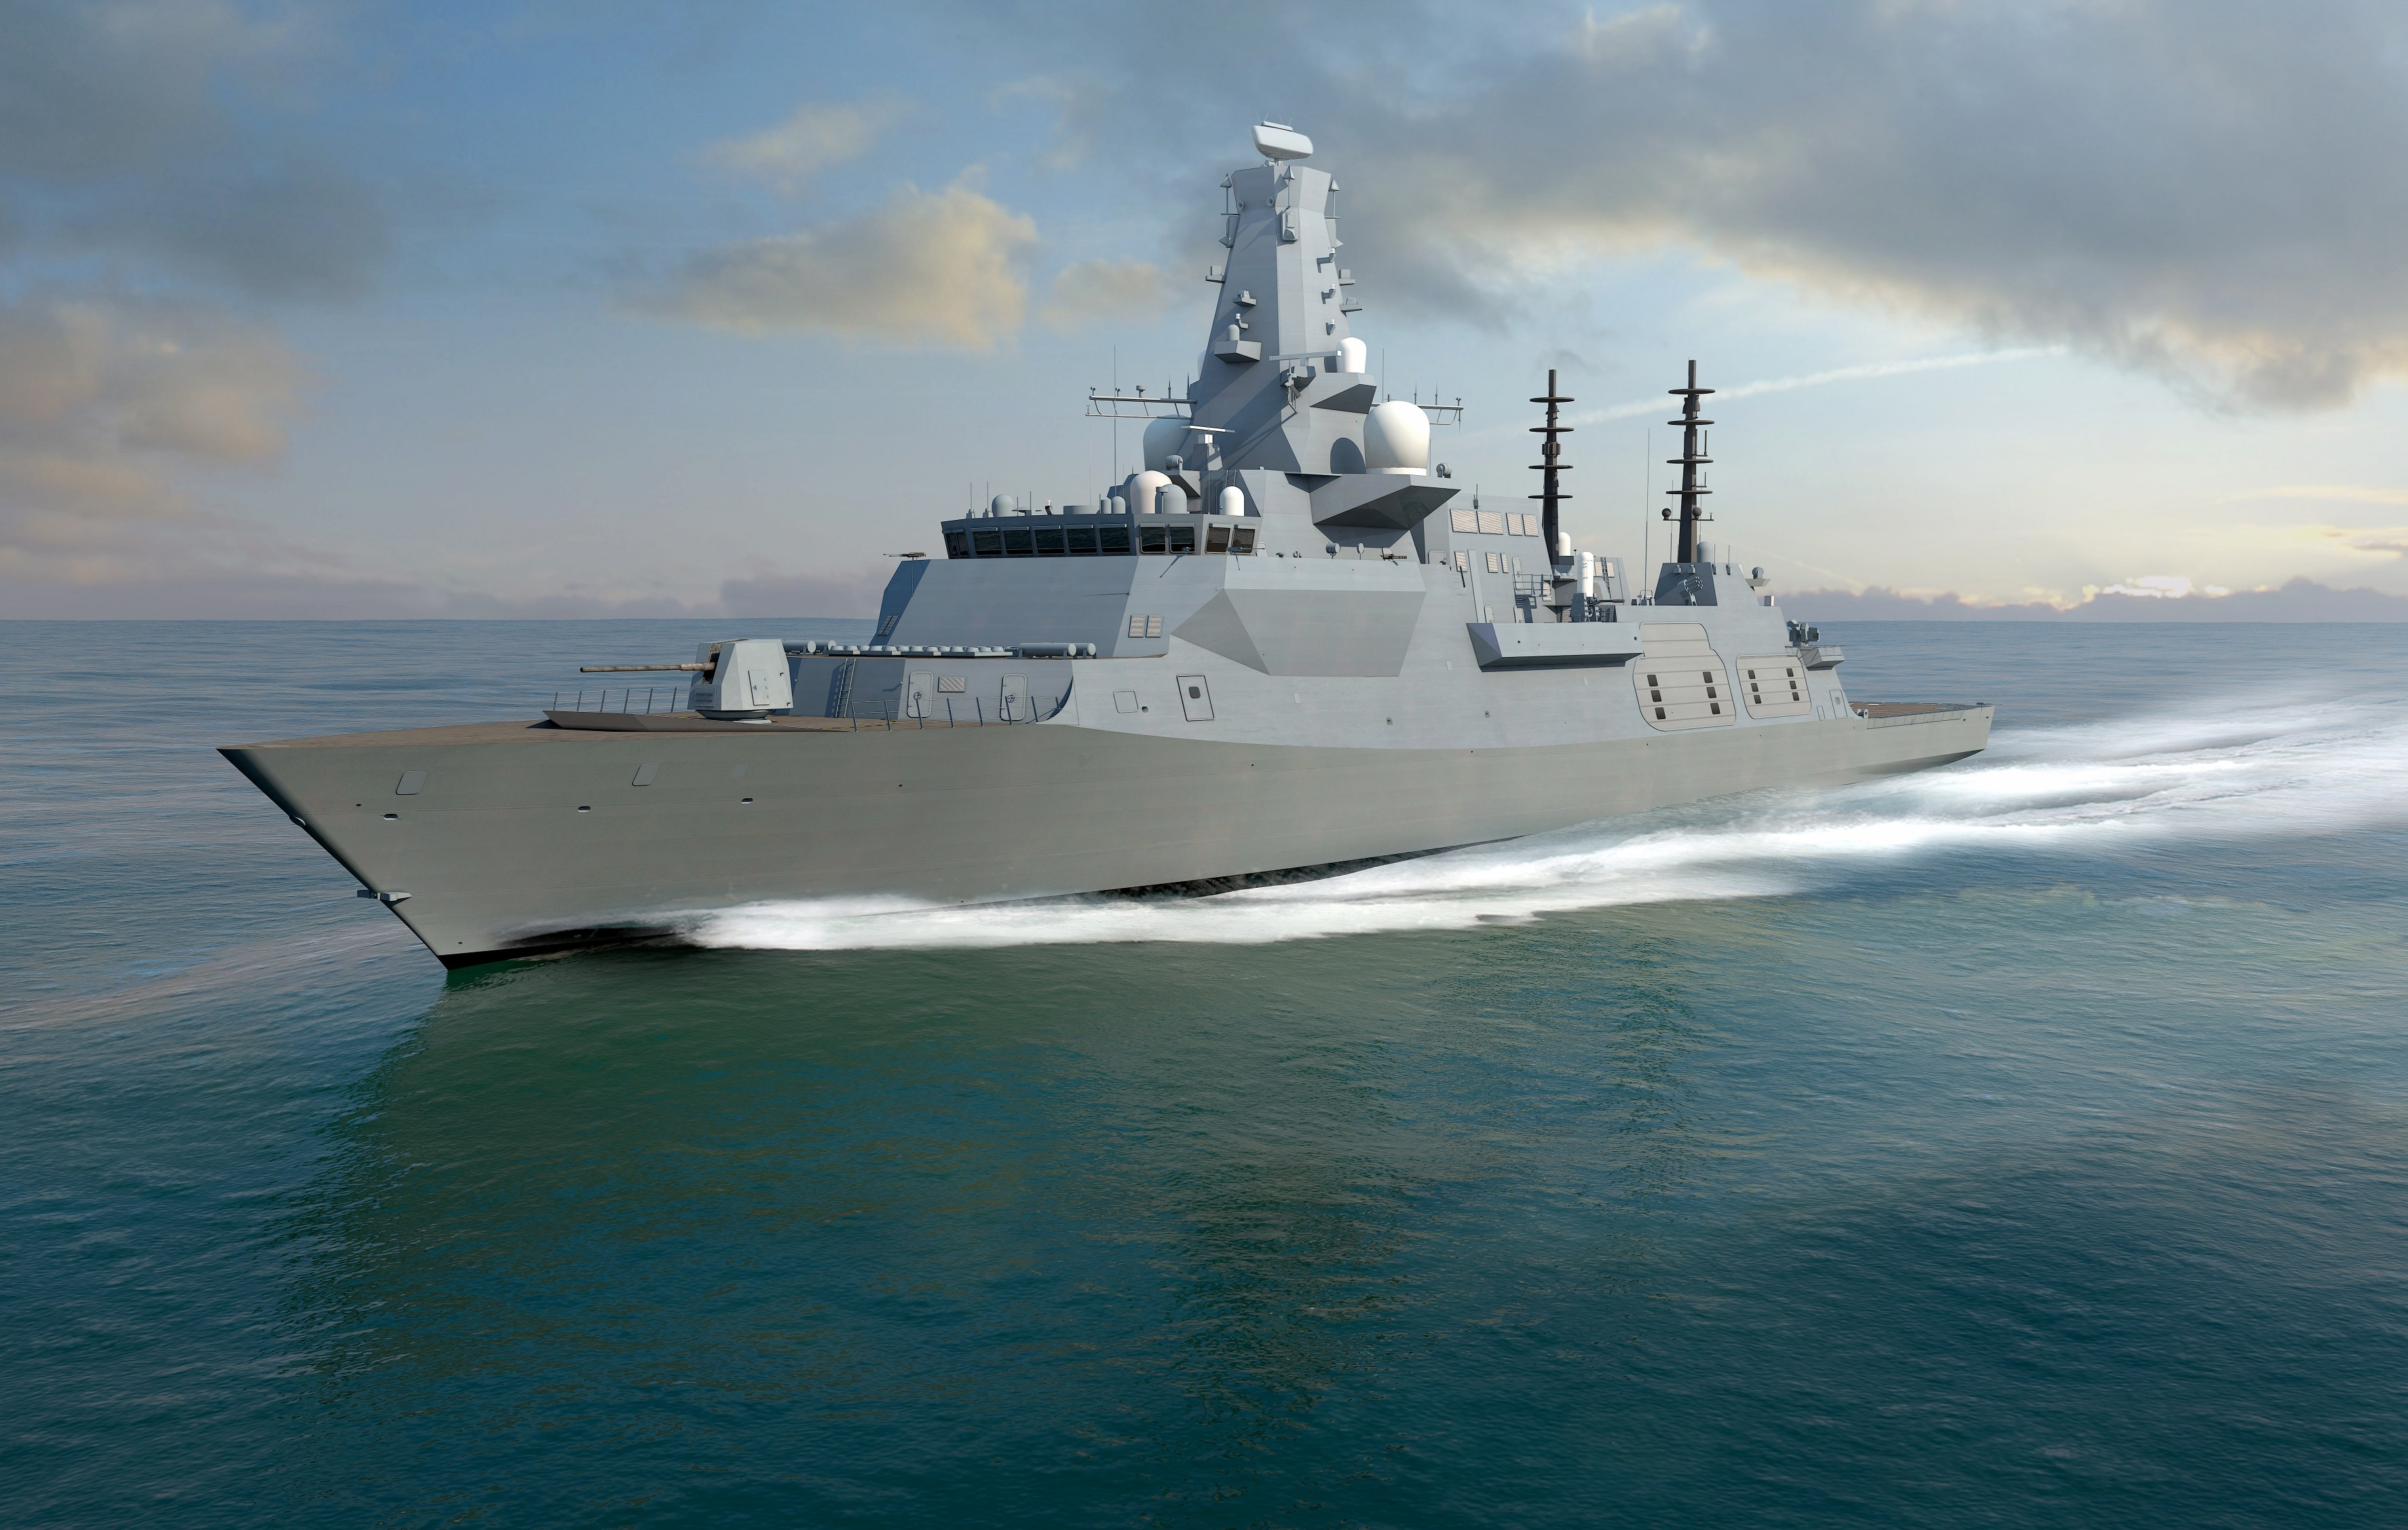 BAE Systems gets green light on $4.9 billion deal from UK for anti-sub warfare frigates